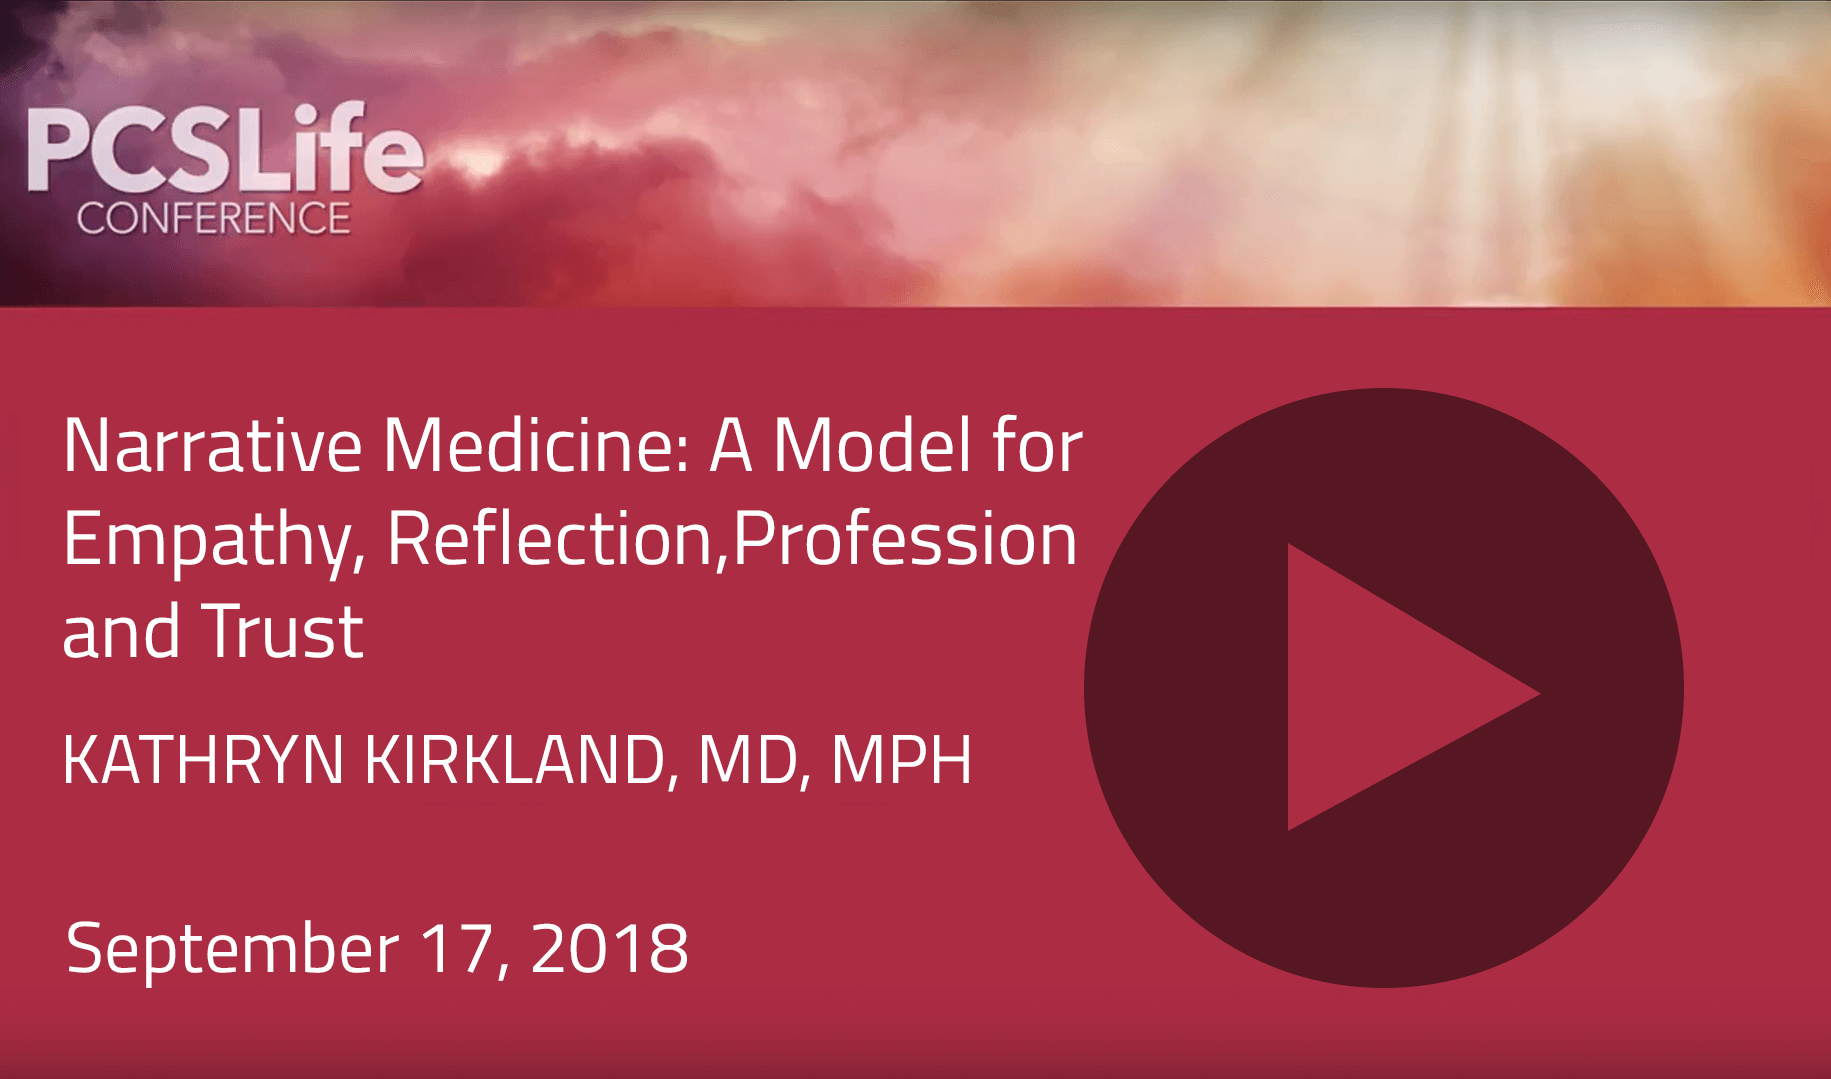 Narrative Medicine: A Model for Empathy, Reflection, Profession and Trust by Kathryn Kirkland